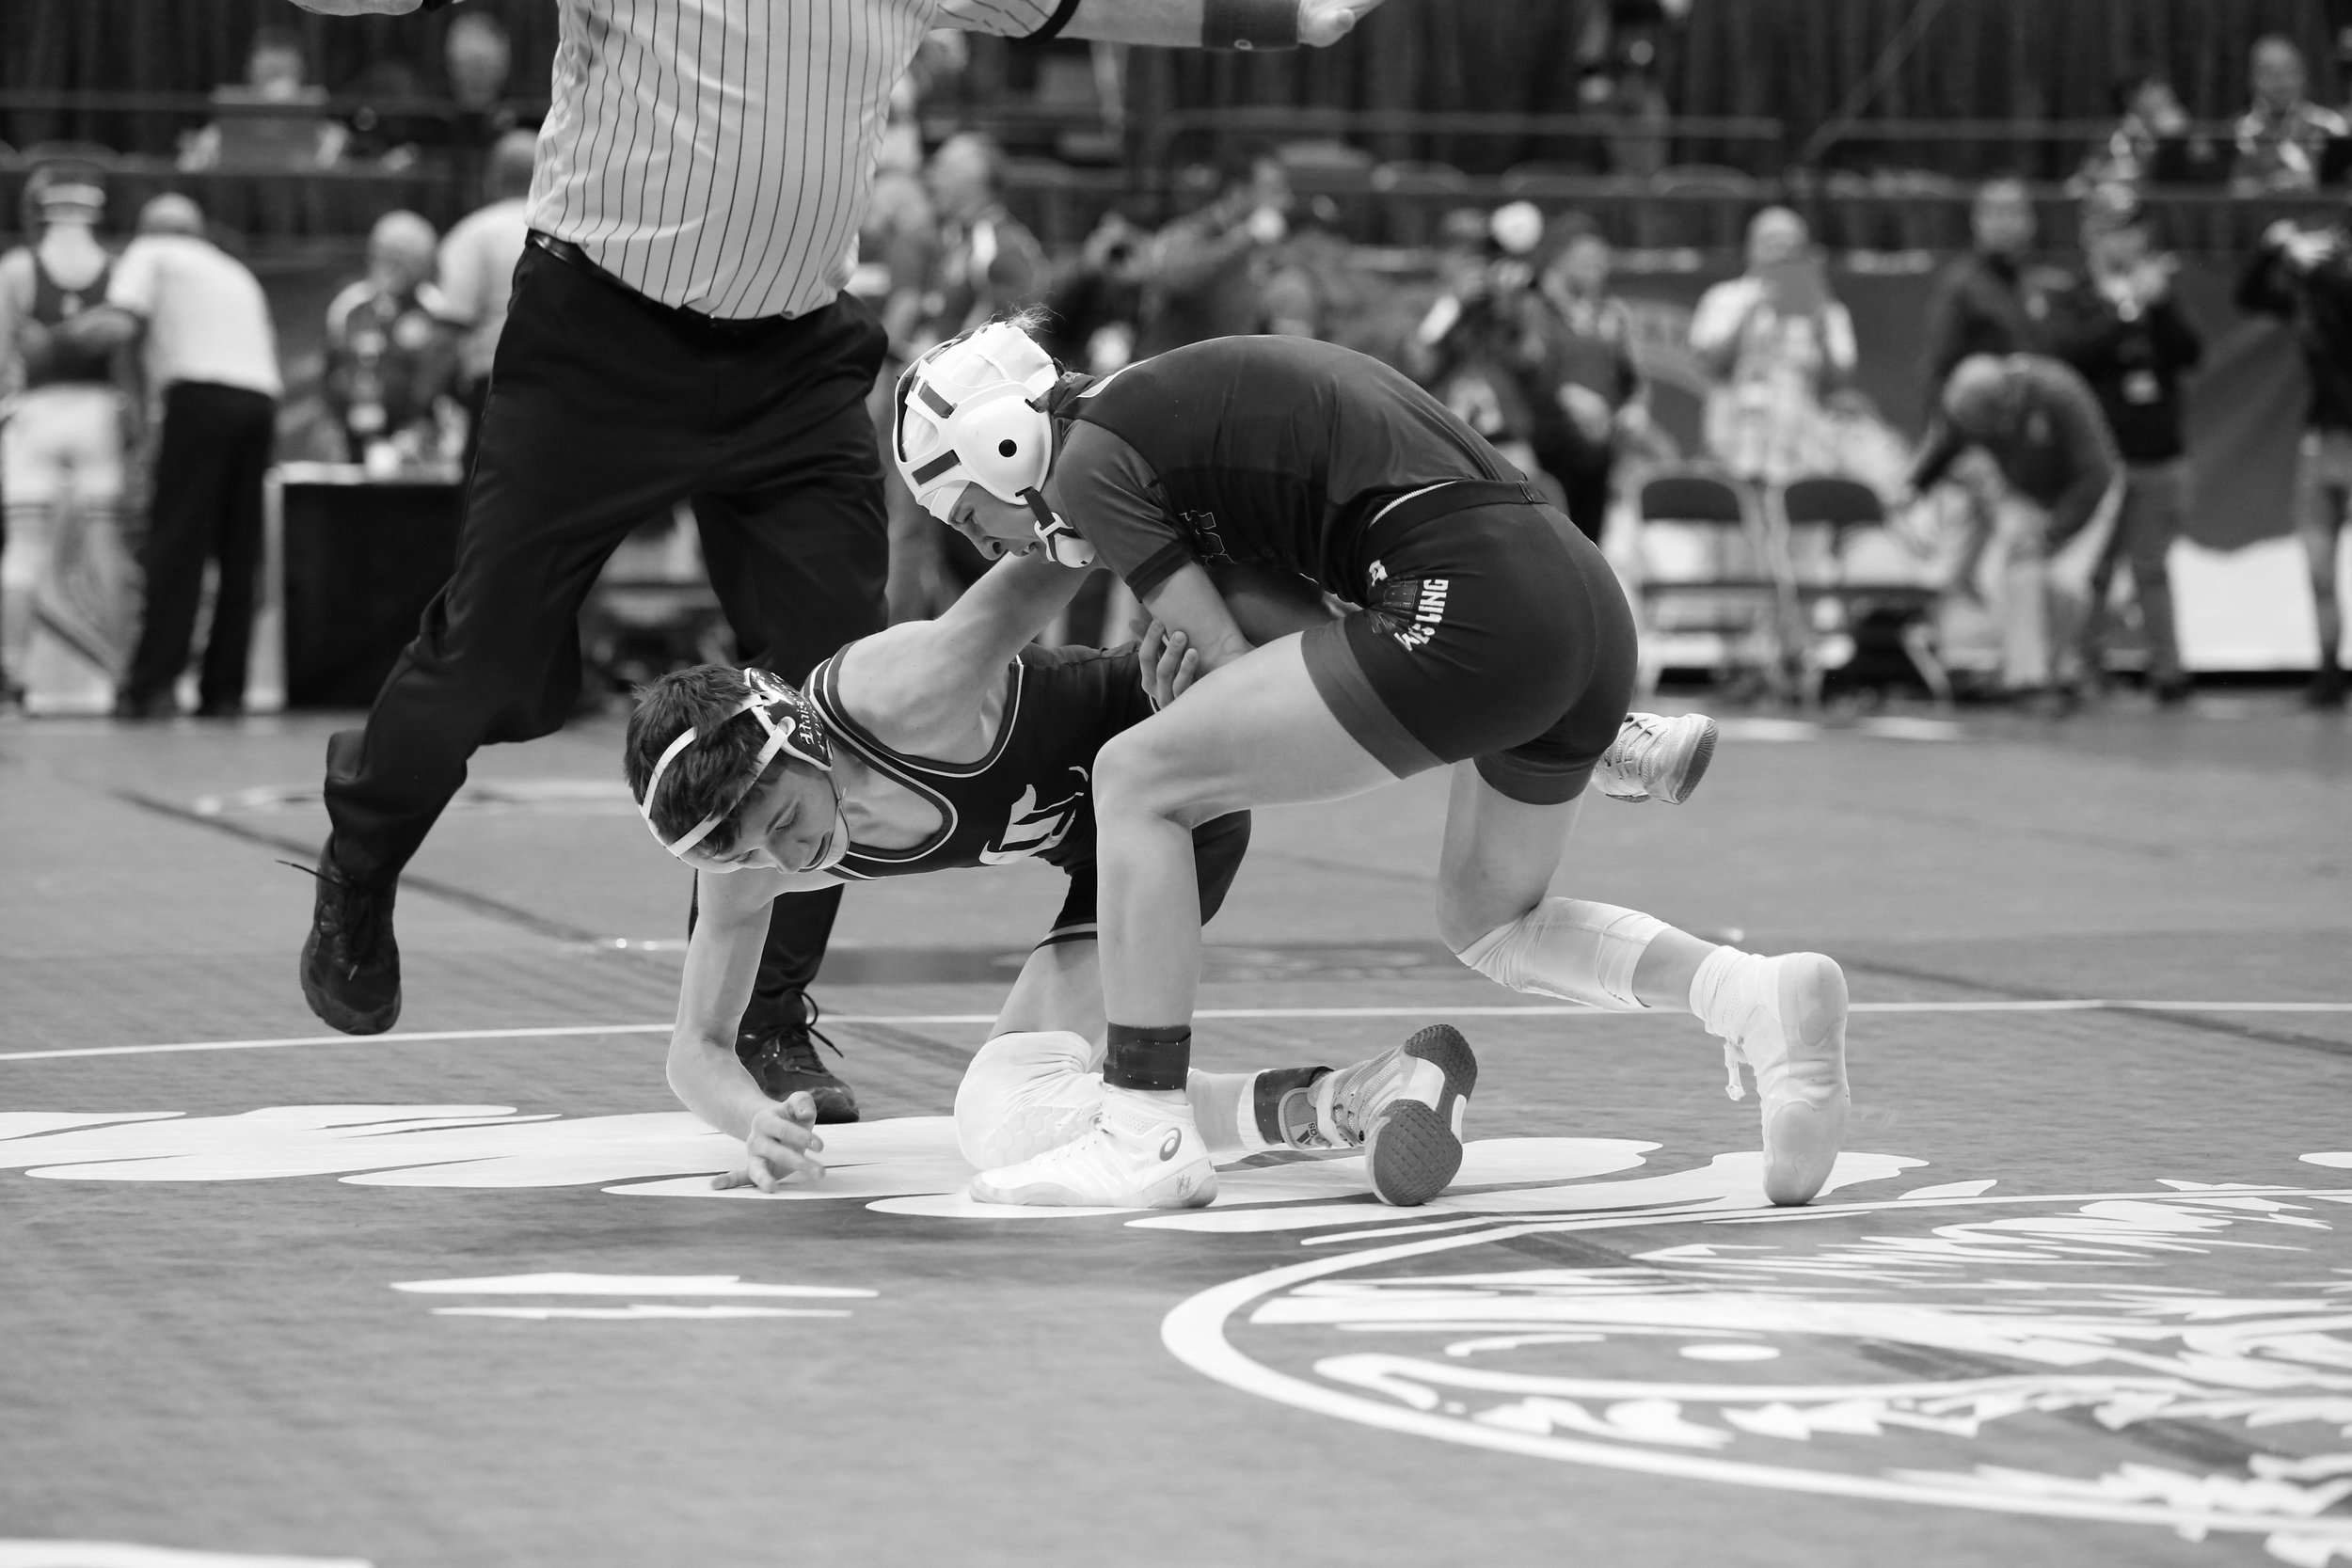 CURRENT STATES SANCTIONED FOR HS GIRLS WRESTLING -